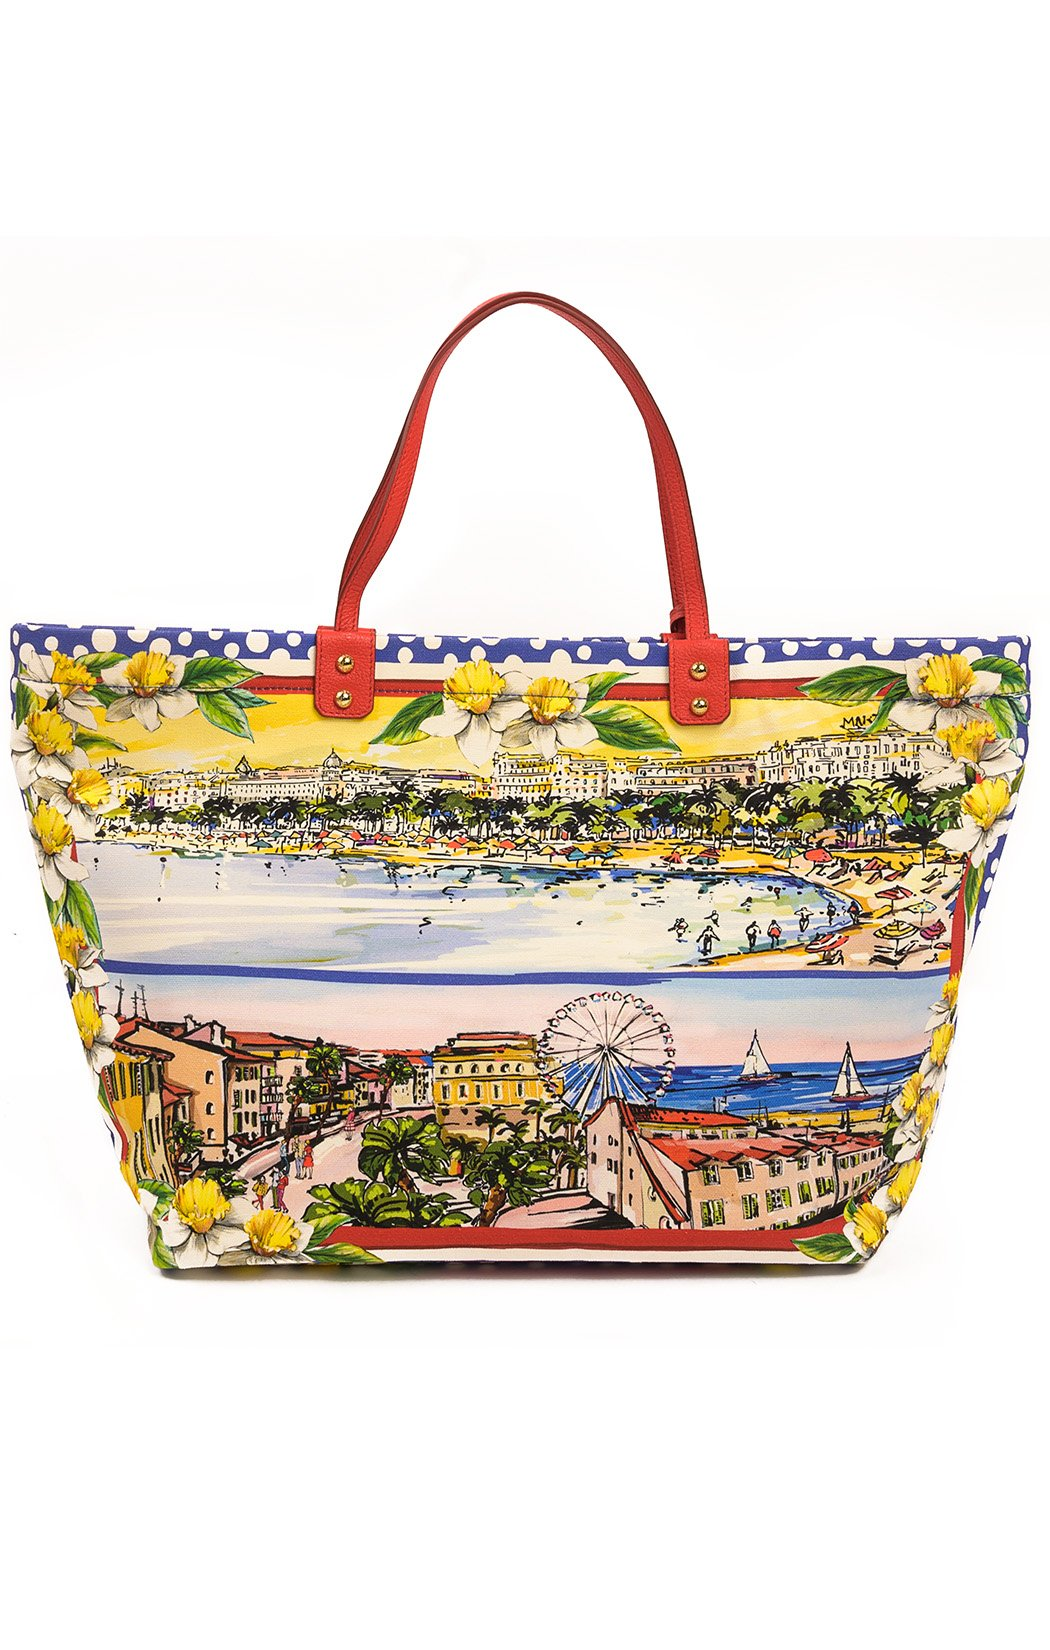 Back view of DOLCE & GABBANA Tote